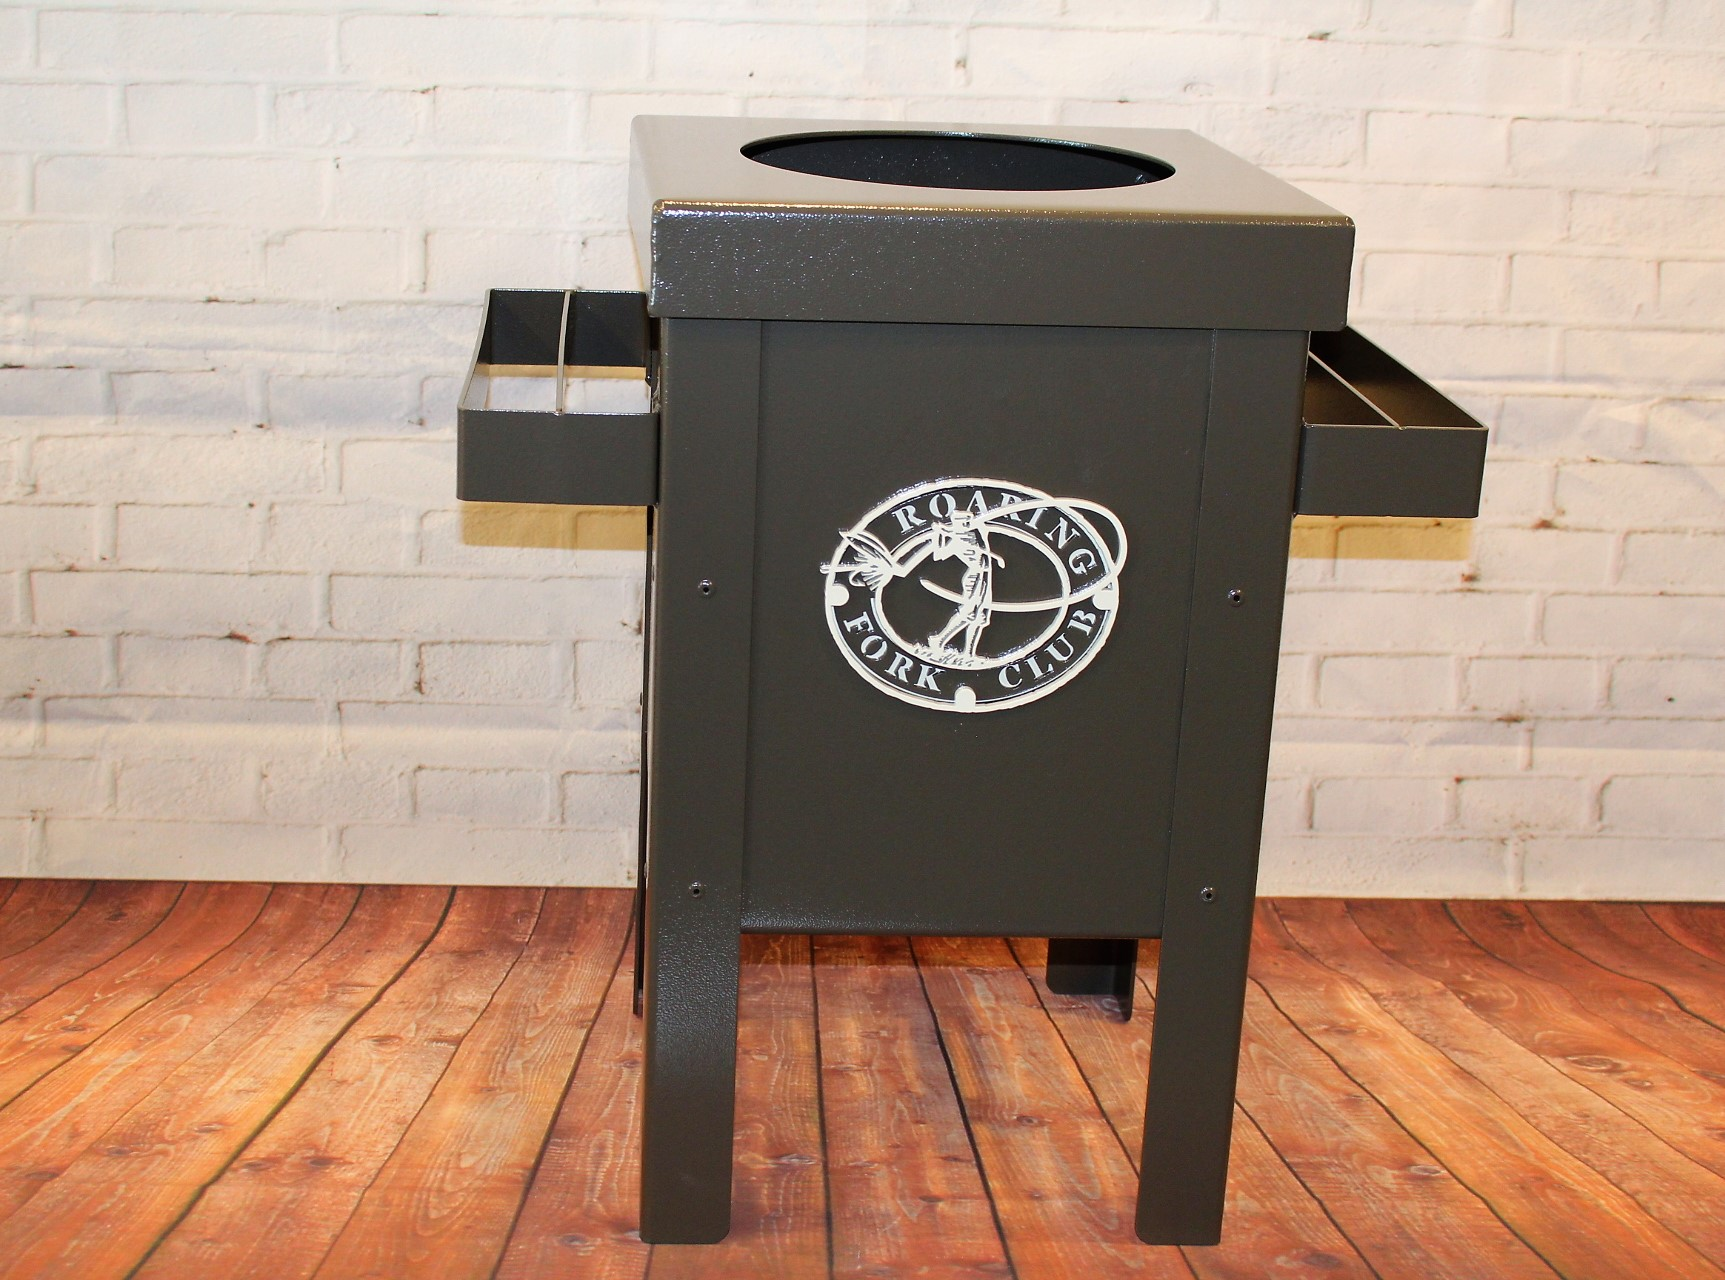 Club Cleaning Station -Roaring Forks